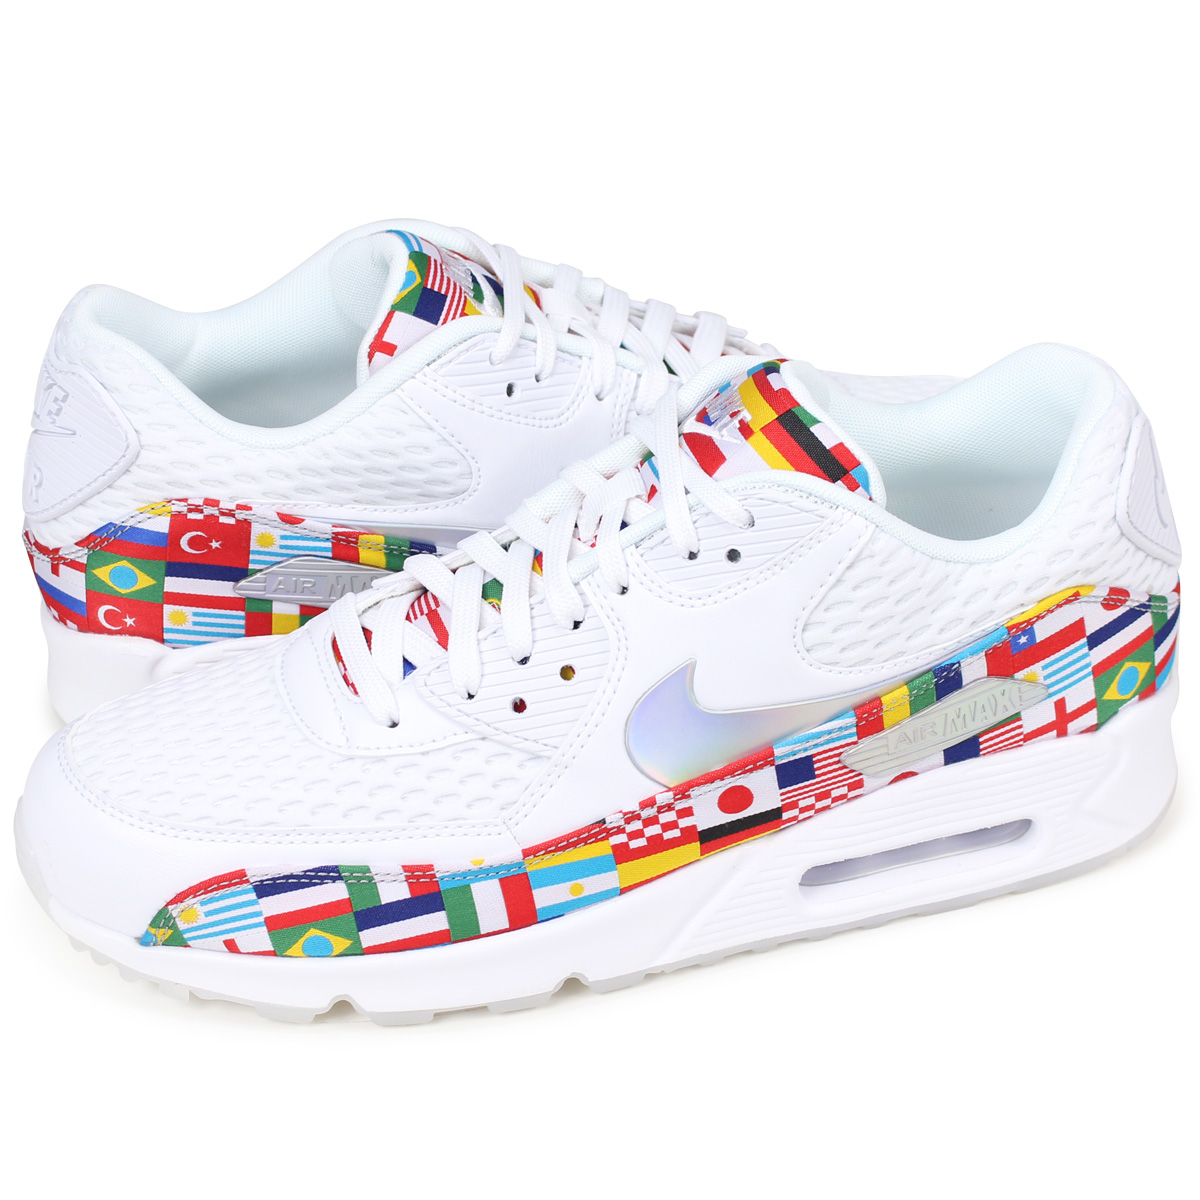 the best attitude 668c1 4e87c NIKE AIR MAX 90 NIC QS Kie Ney AMAX 90 sneakers men AO5119-100 white [load  planned Shinnyu load in reservation product 6/16 containing]